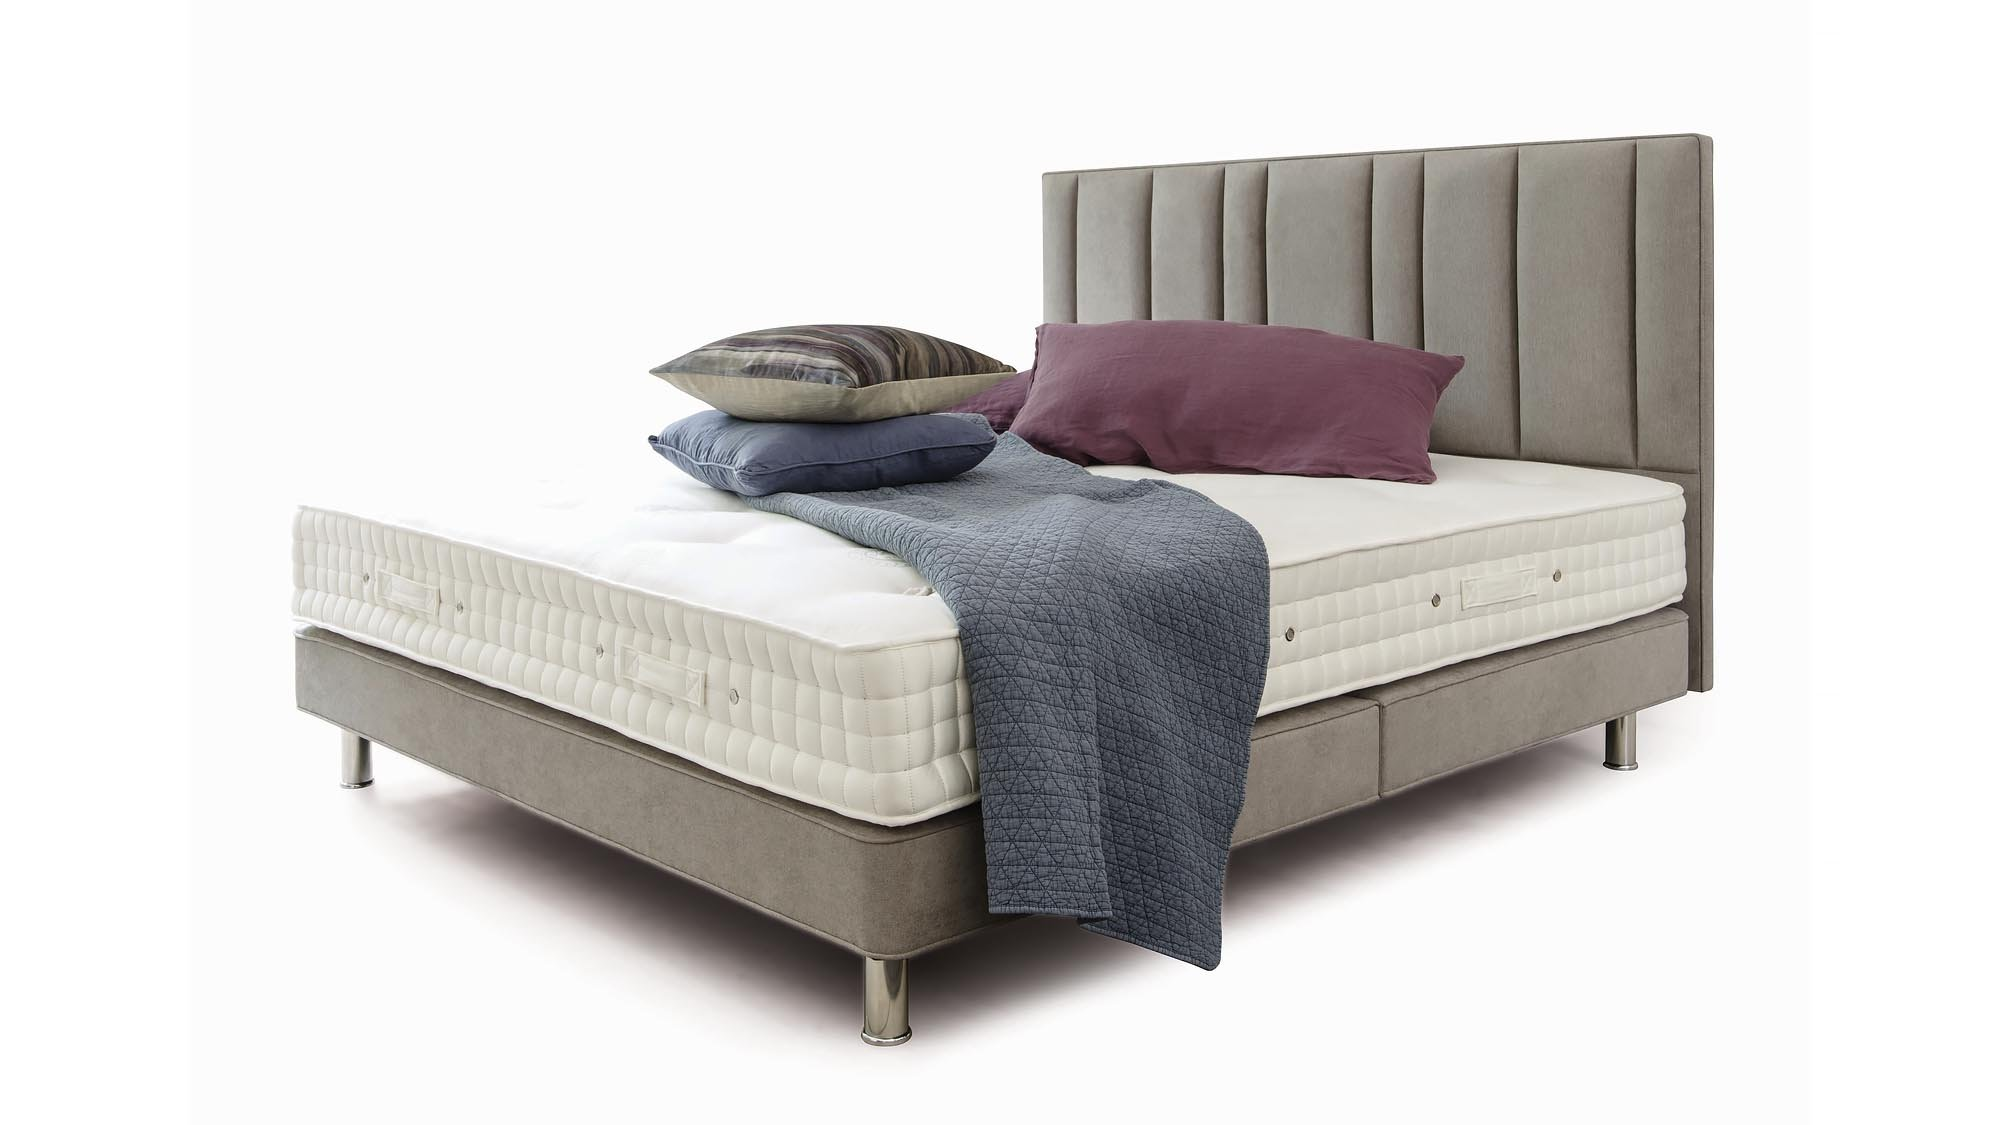 How To Choose A Mattress Tips On How To Buy The Best Mattress For Your Bed And Budget Expert Reviews